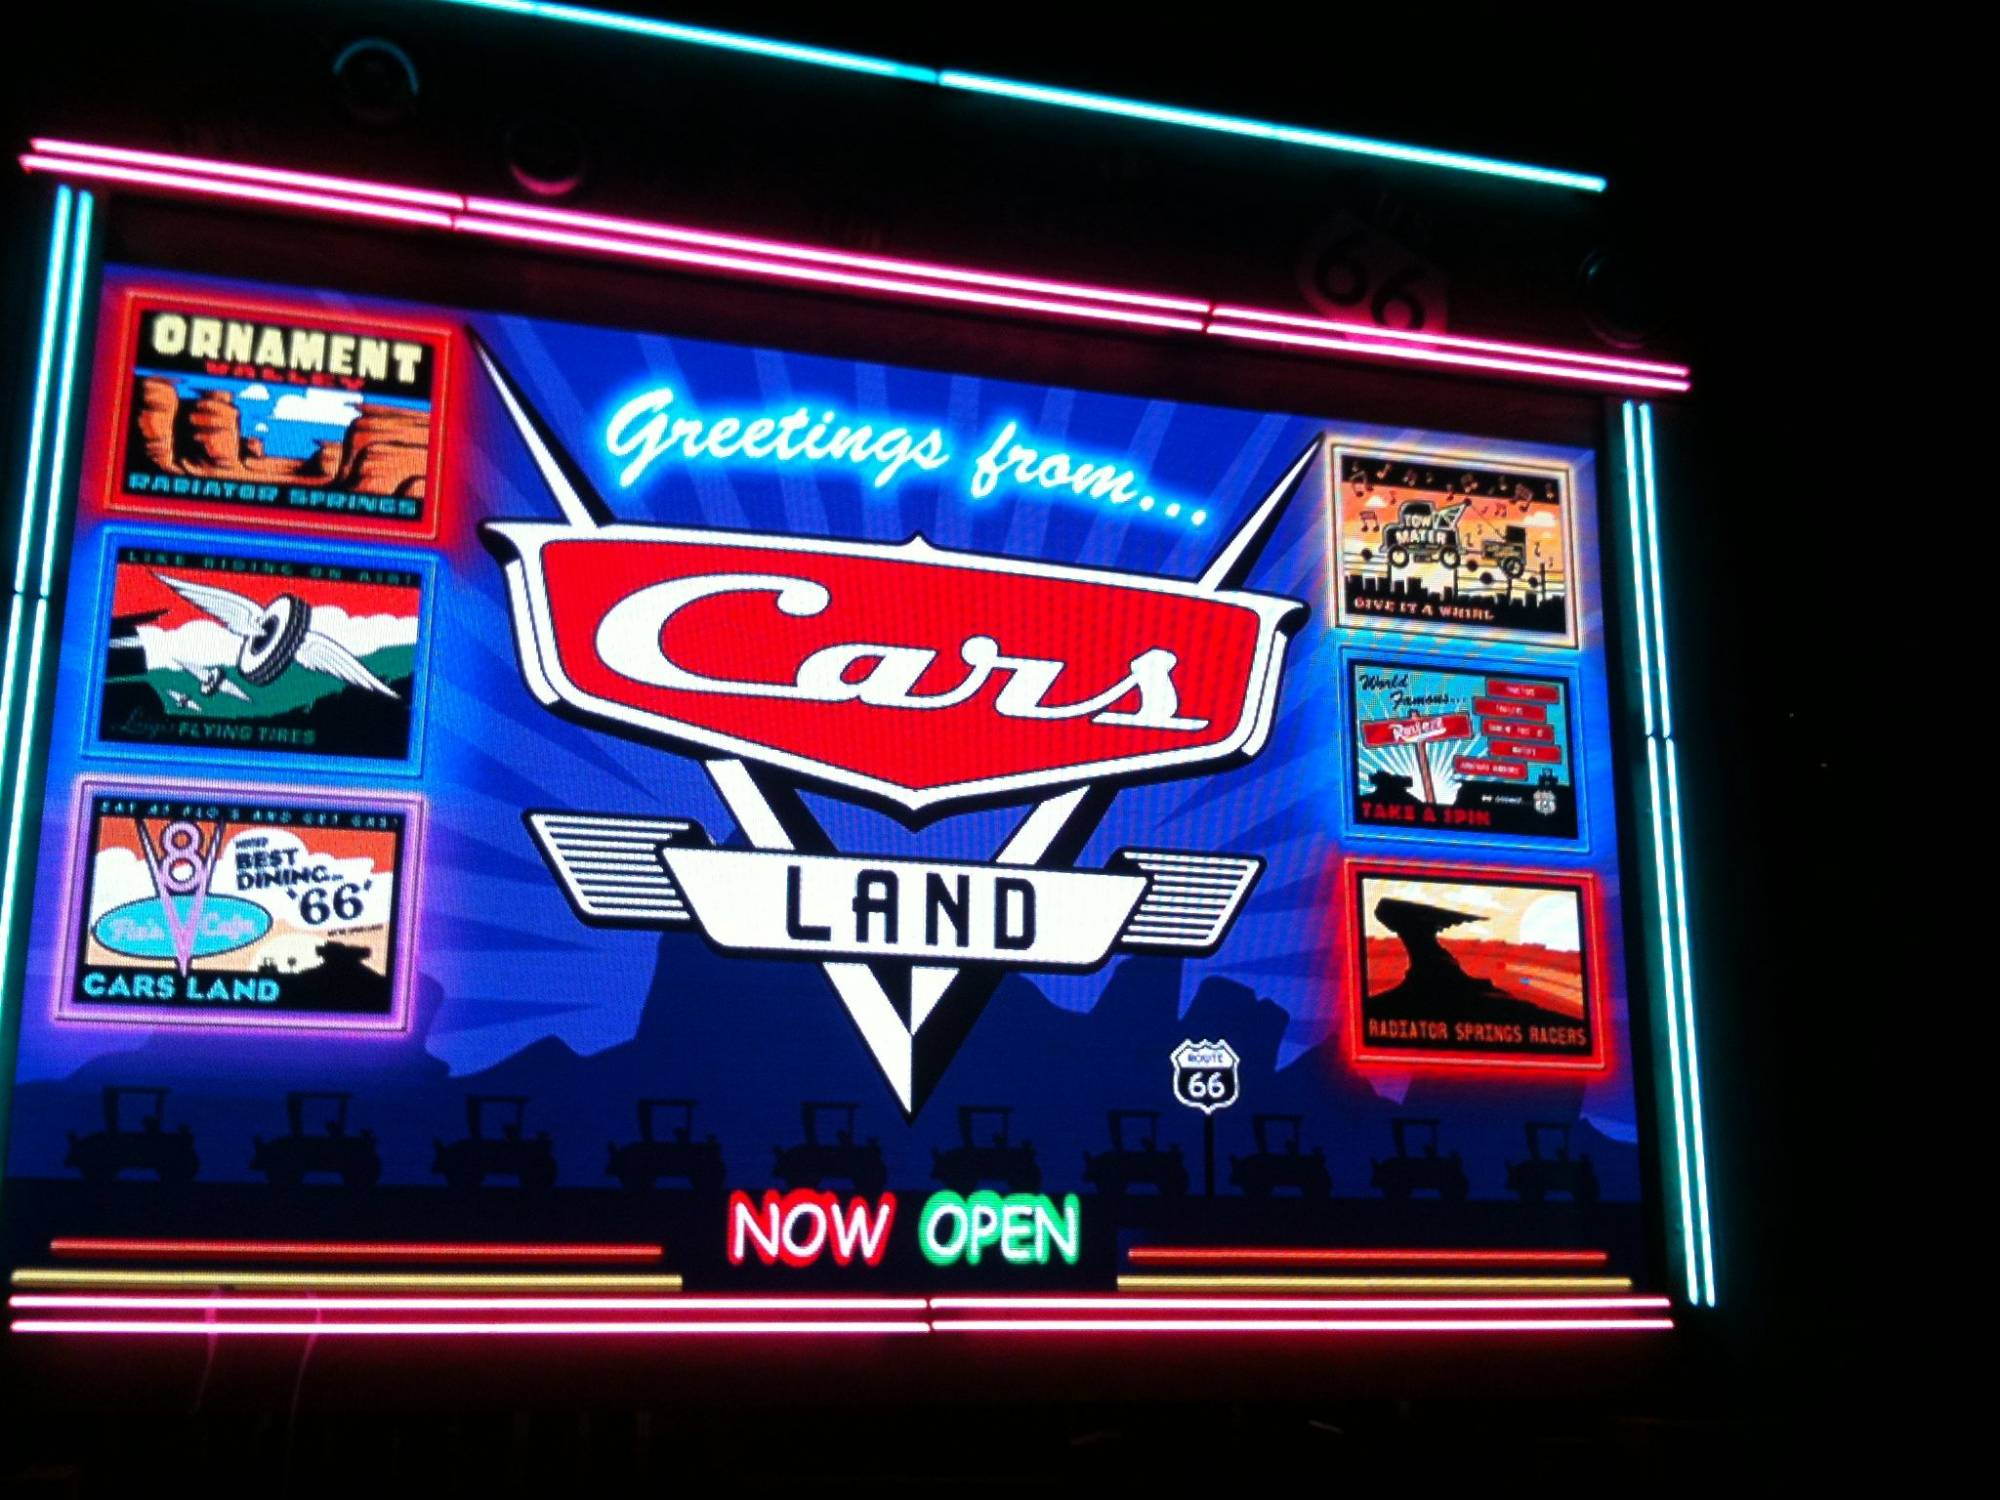 Explore the new offerings at Disney California Adventure in Cars Land |PassPorter.com